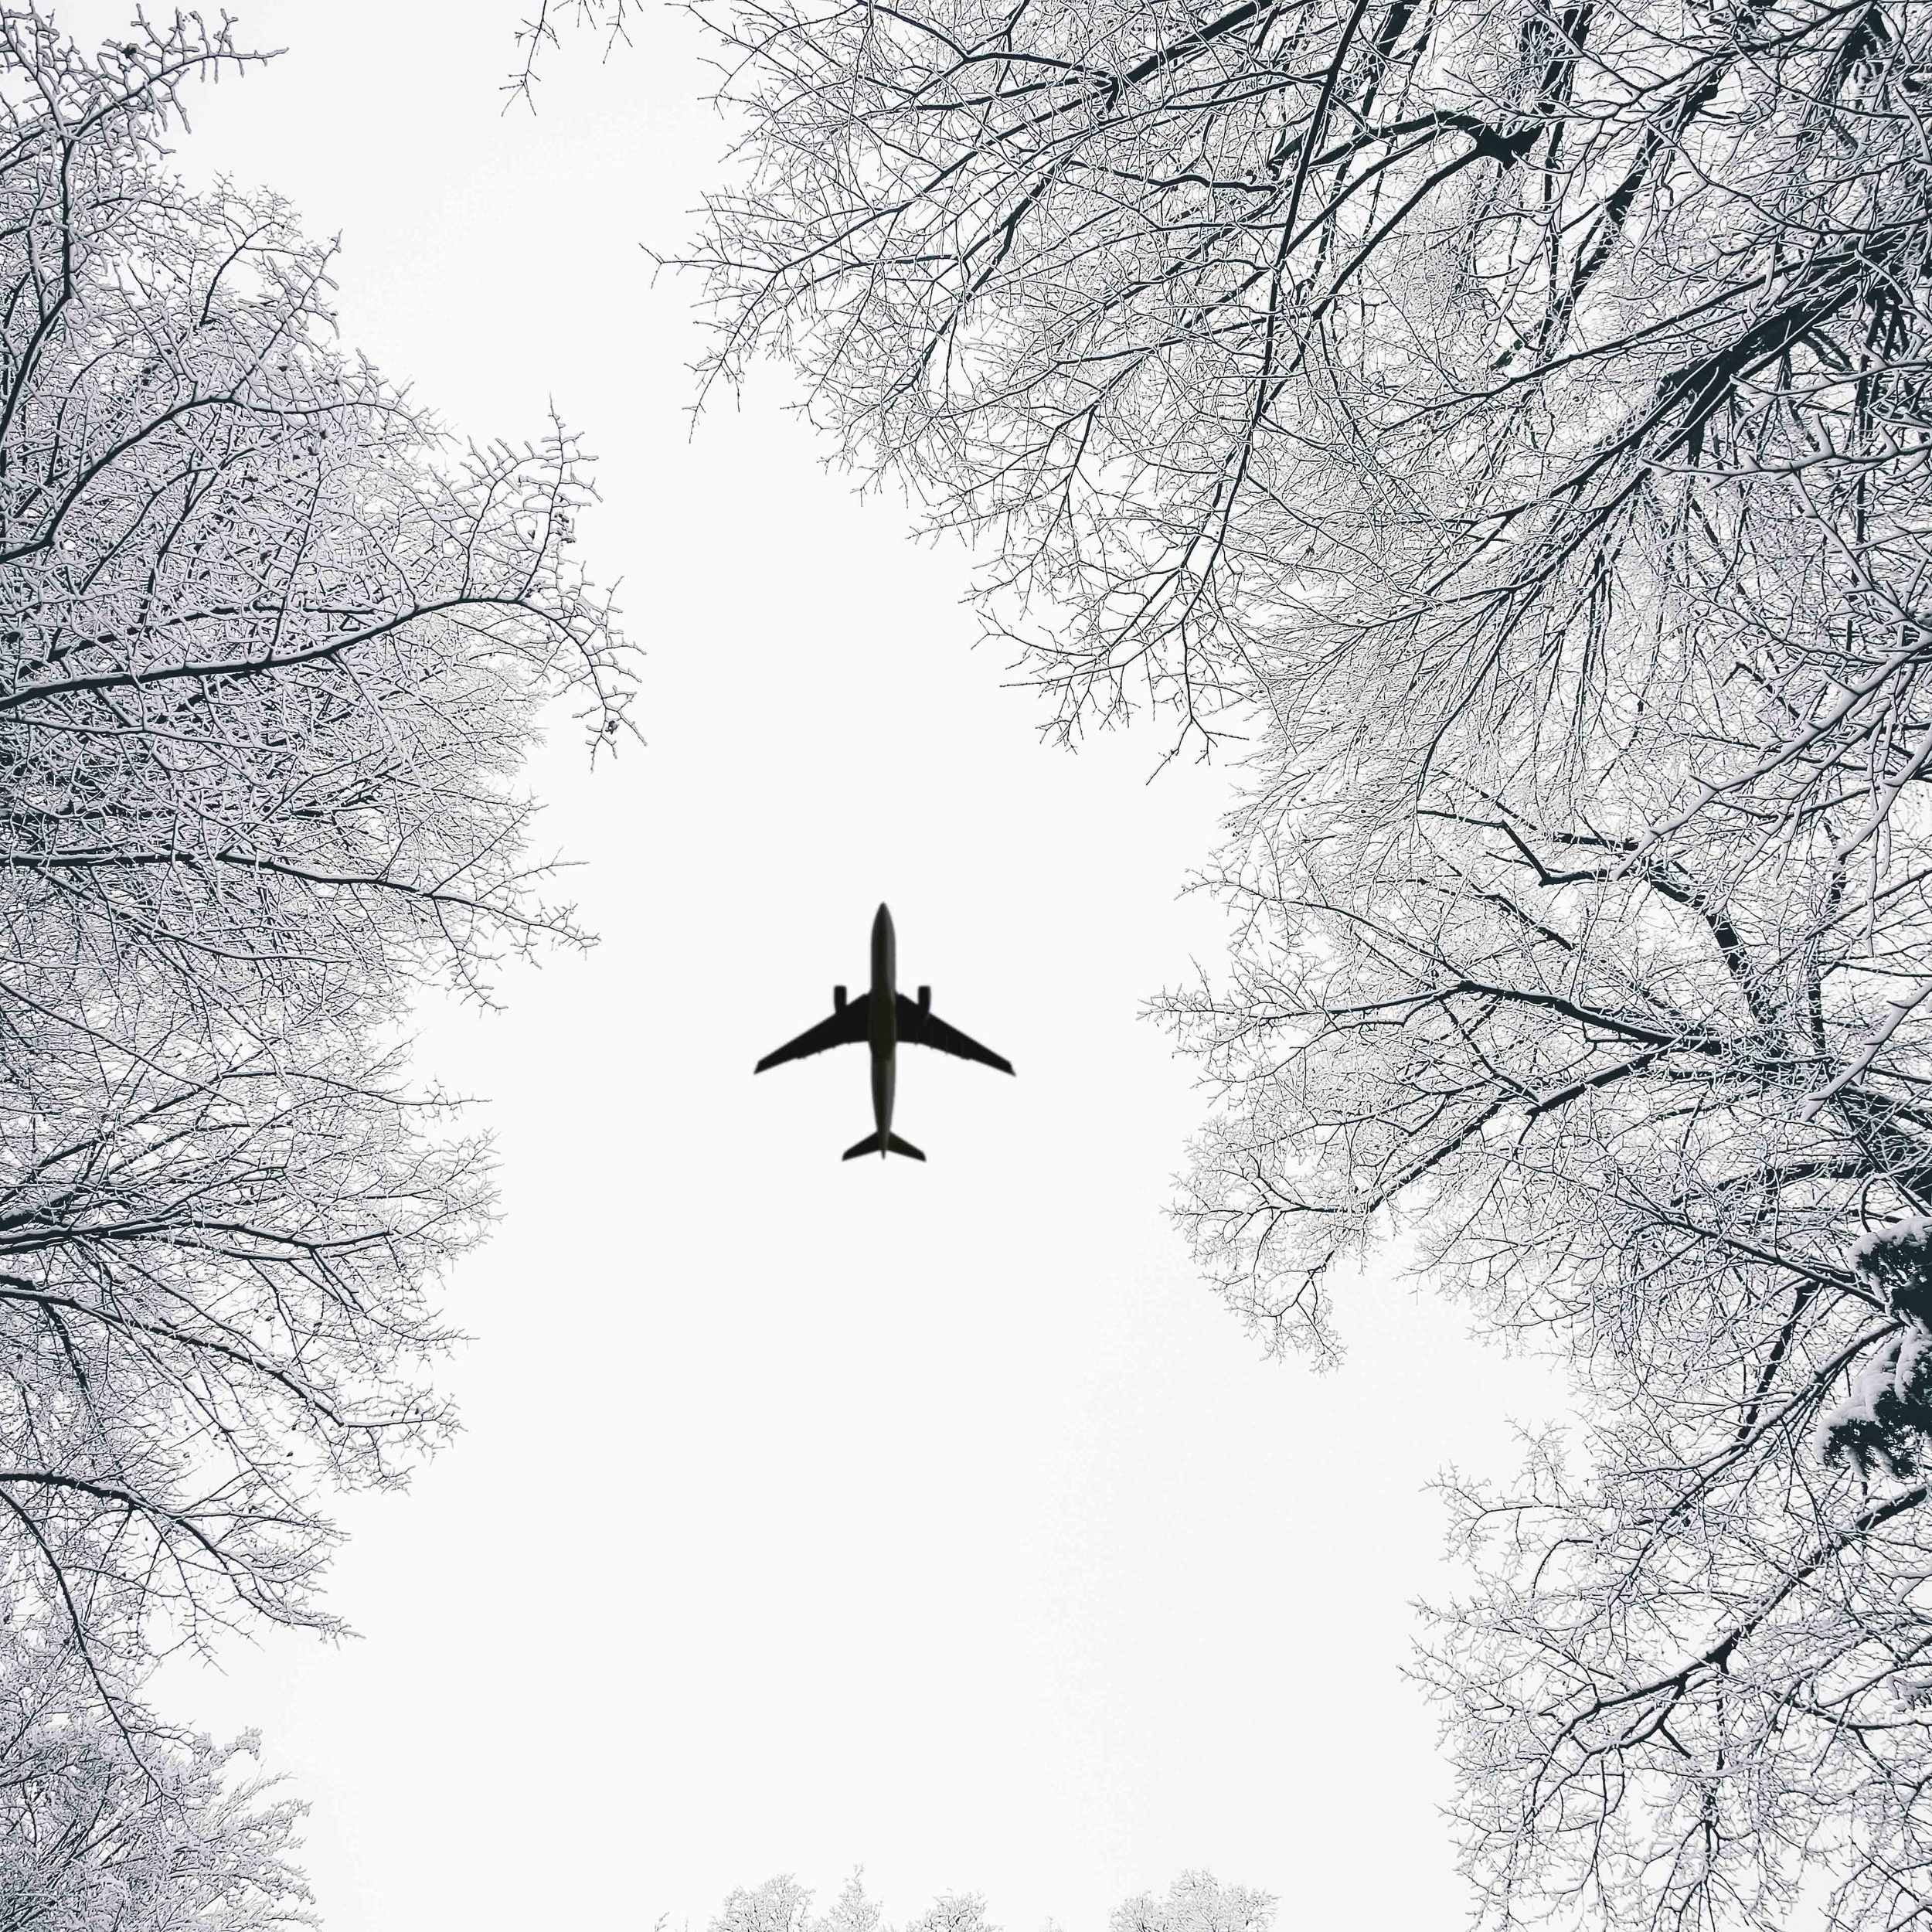 aircraft-black-and-white-cold-1867001.jpg